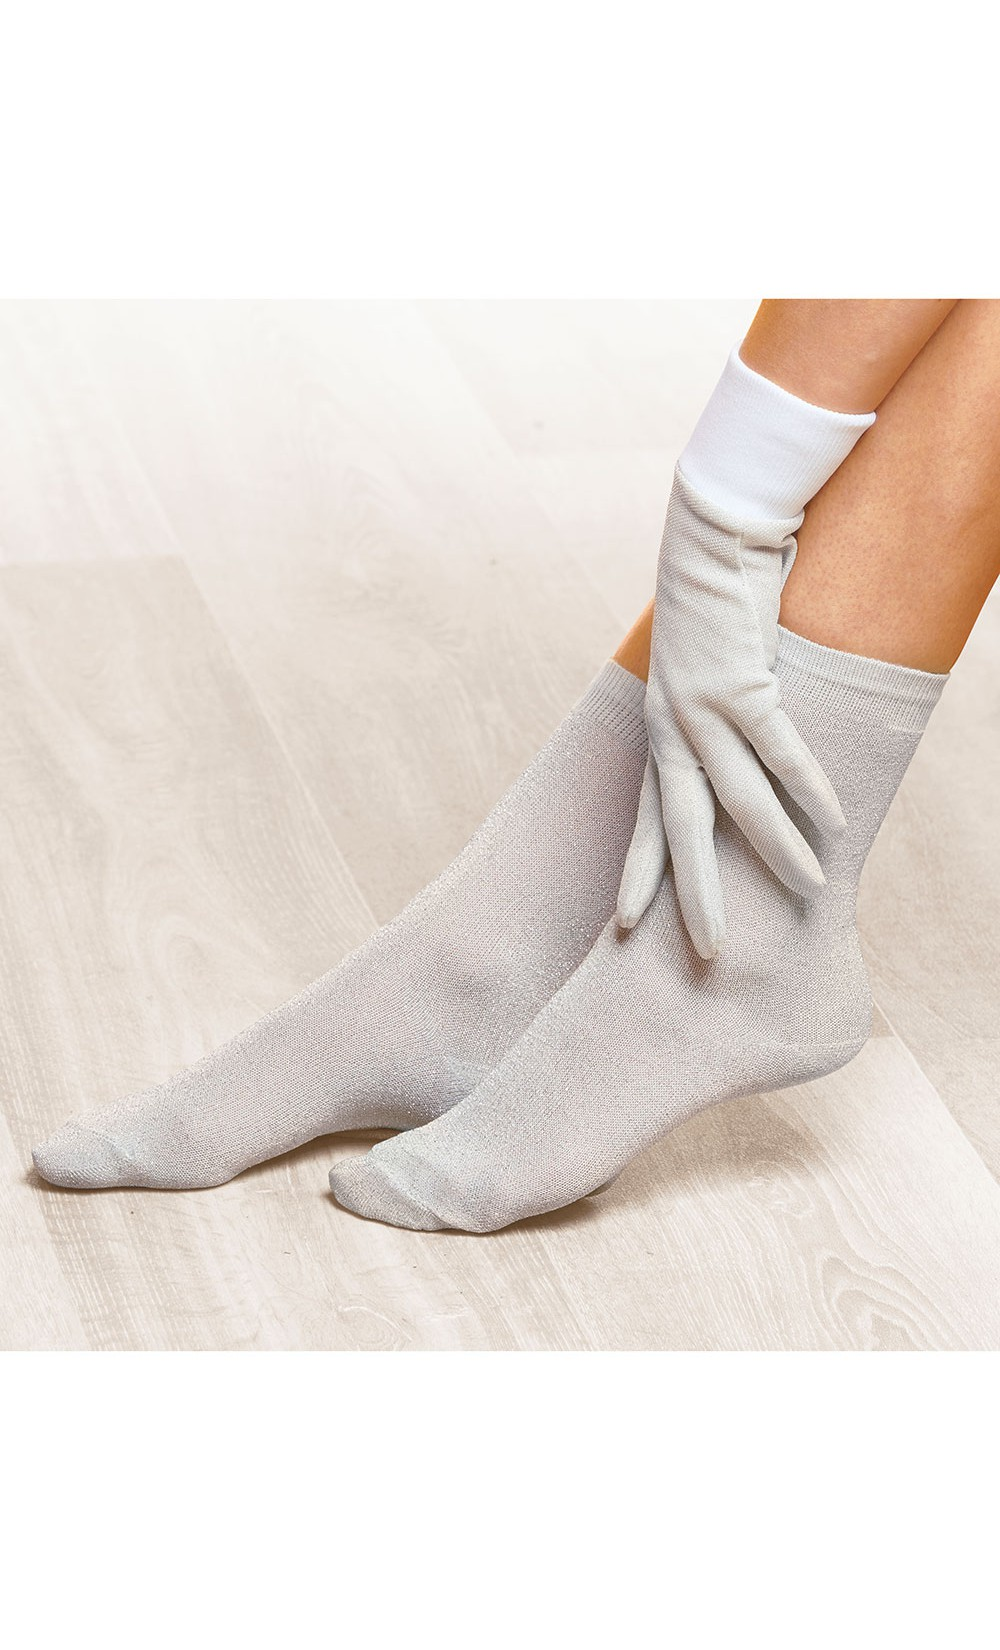 chaussettes - GUSTIN